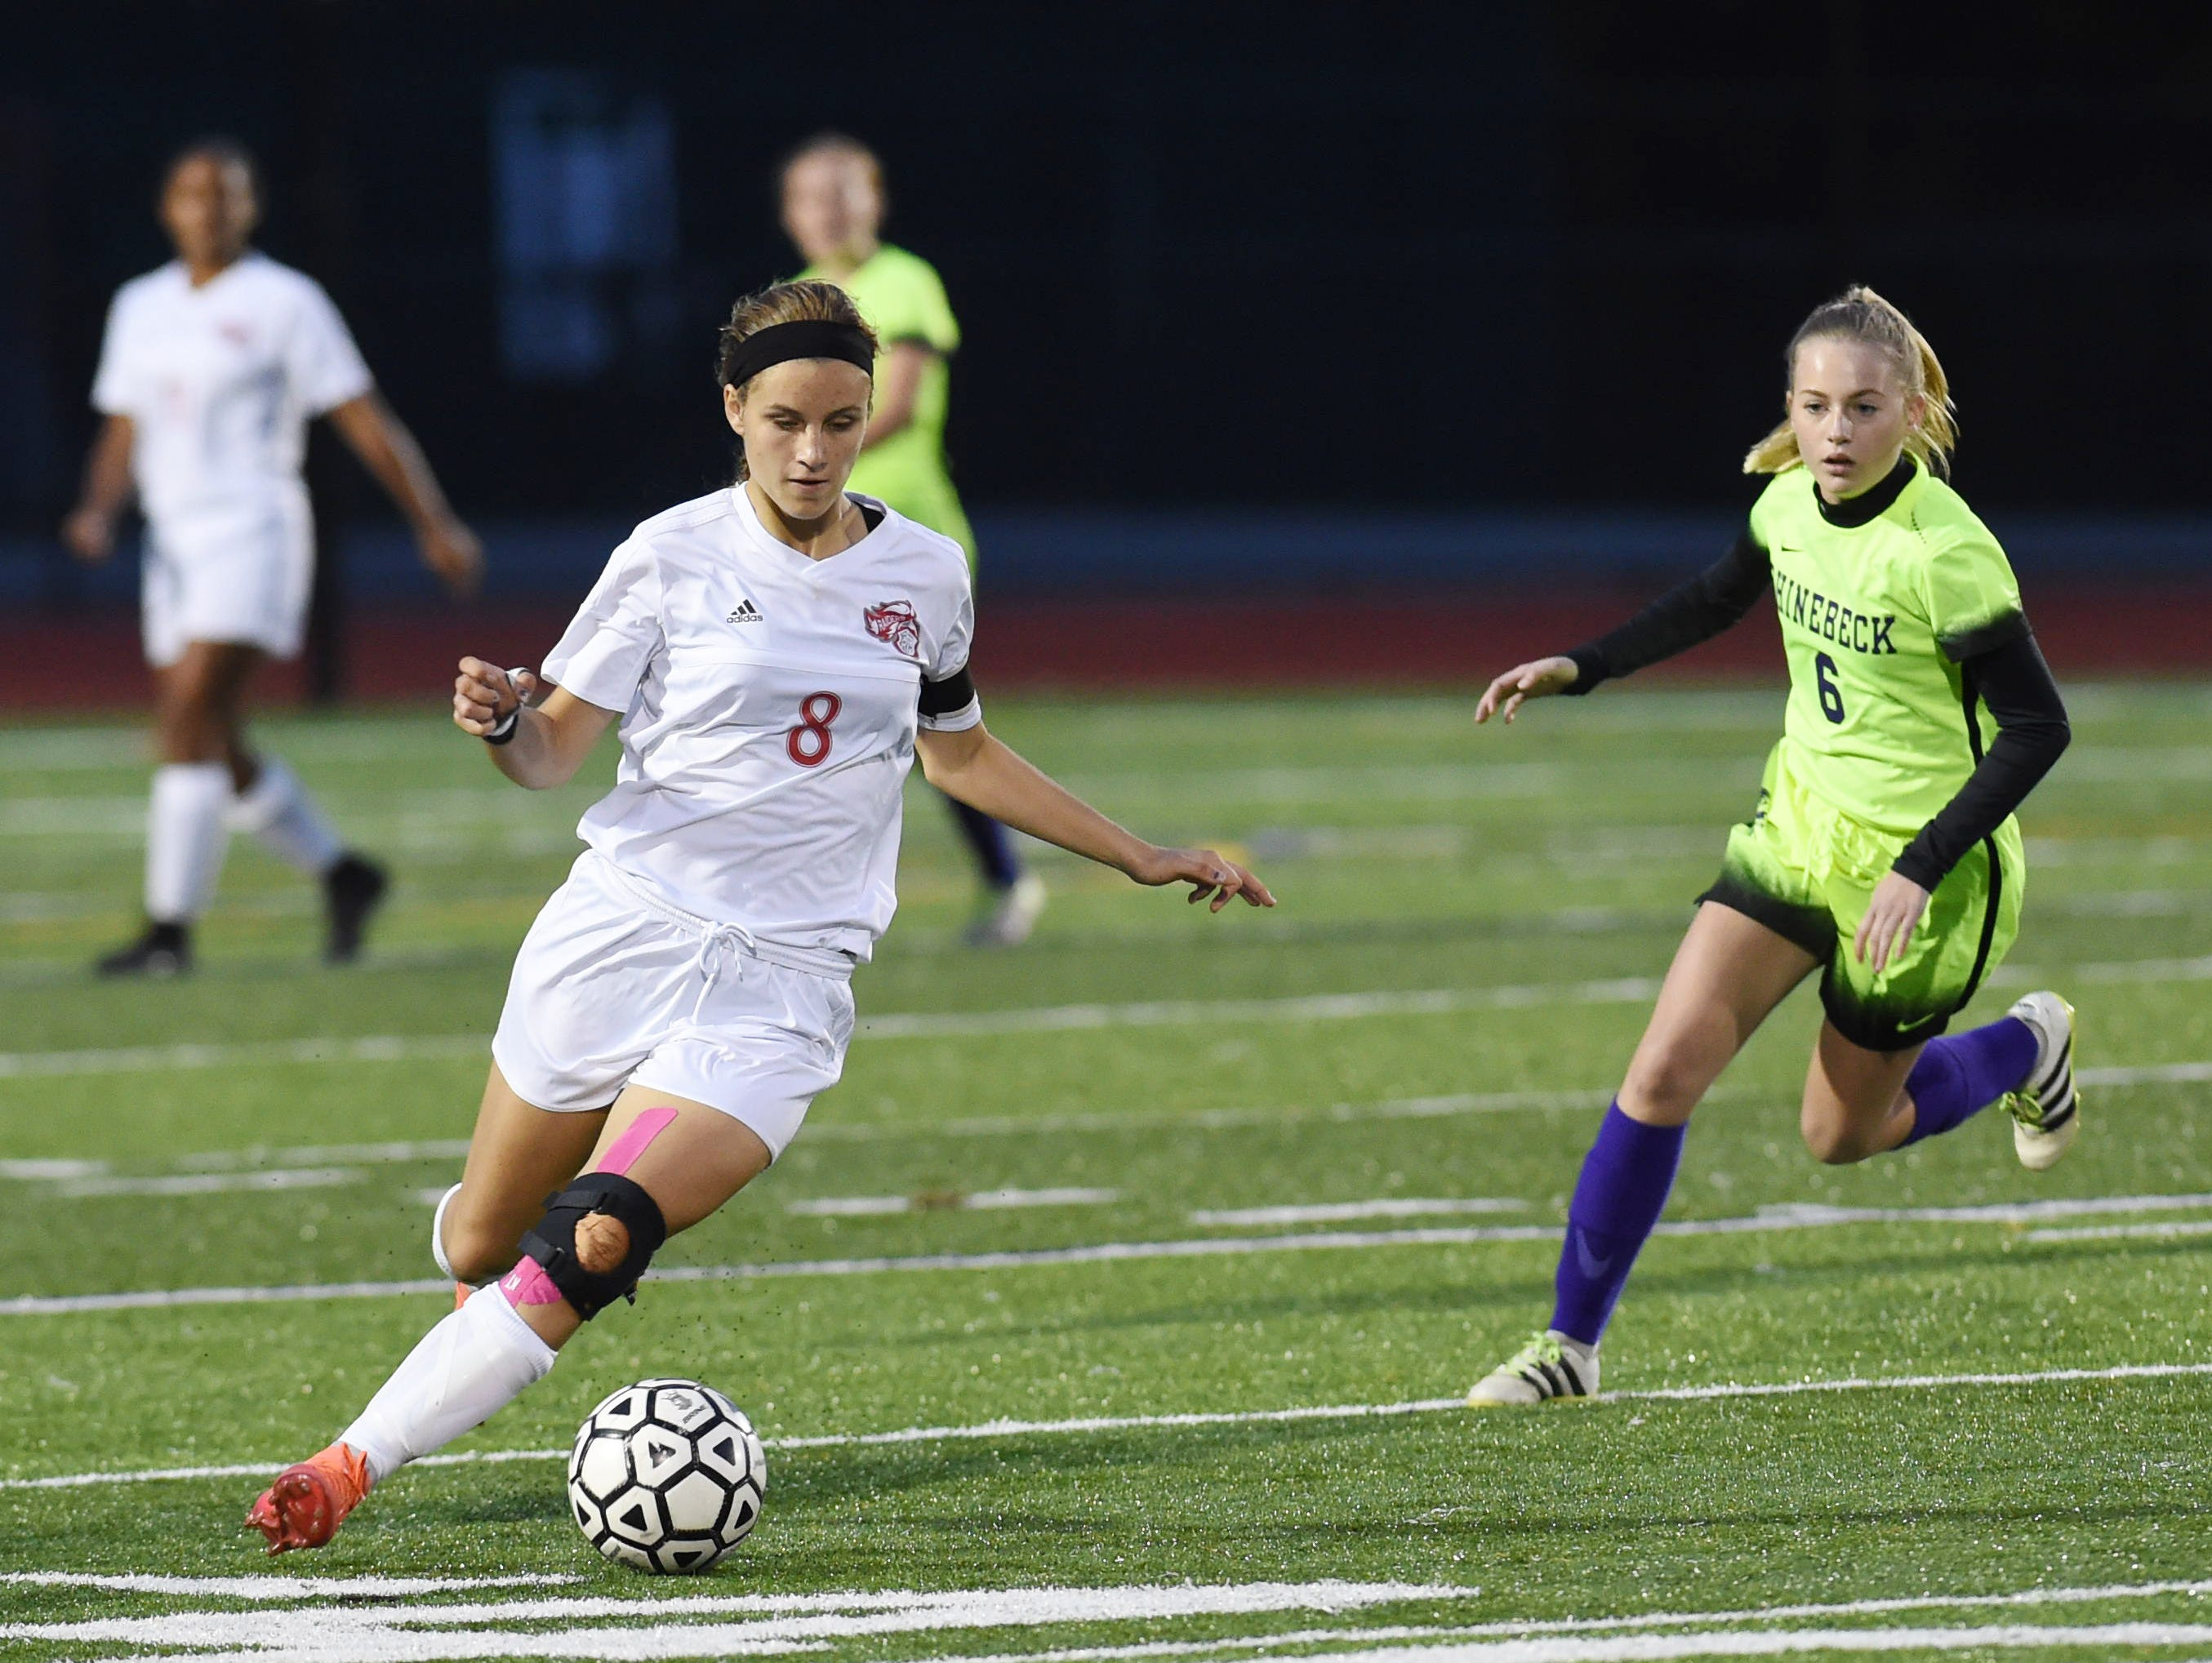 Red Hook's Isabell LaBarbera gains control of the ball as Rhinebeck's Summer Cruikshank closes in on her during Thursday's MHAL girls soccer championship at Franklin D. Roosevelt High School.